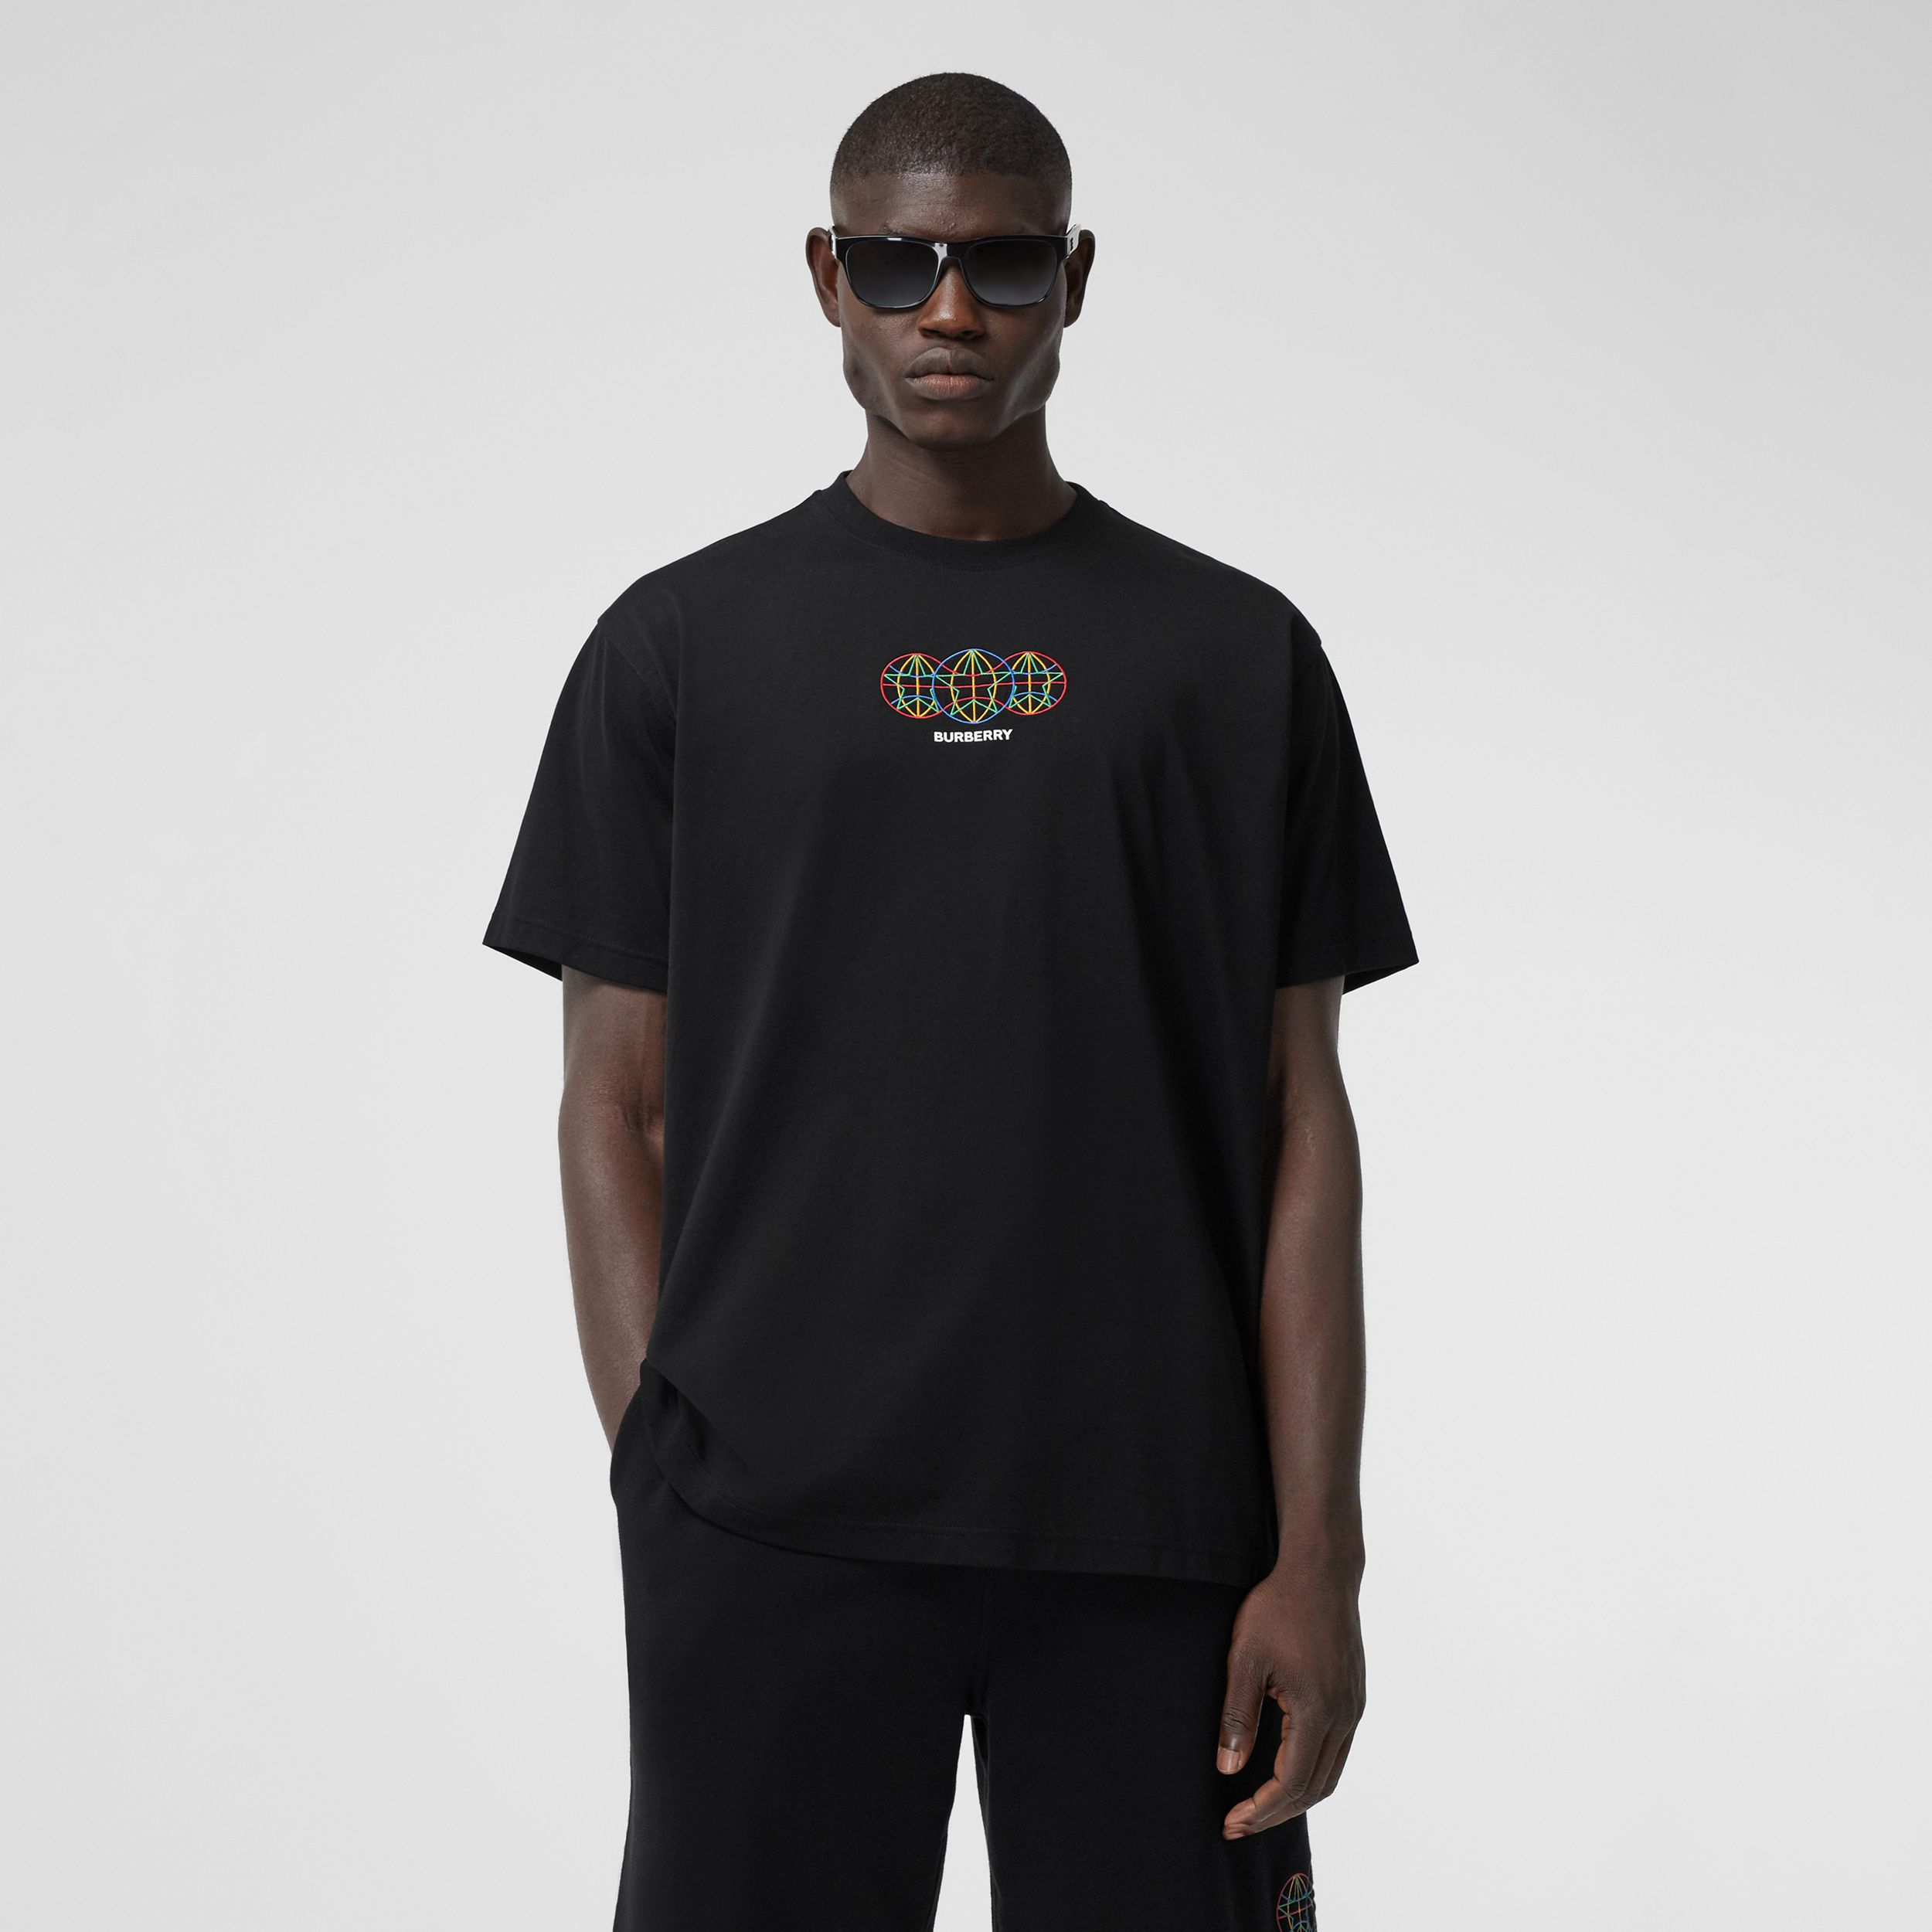 Embroidered Globe Graphic Cotton Oversized T-shirt in Black - Men | Burberry Australia - 1